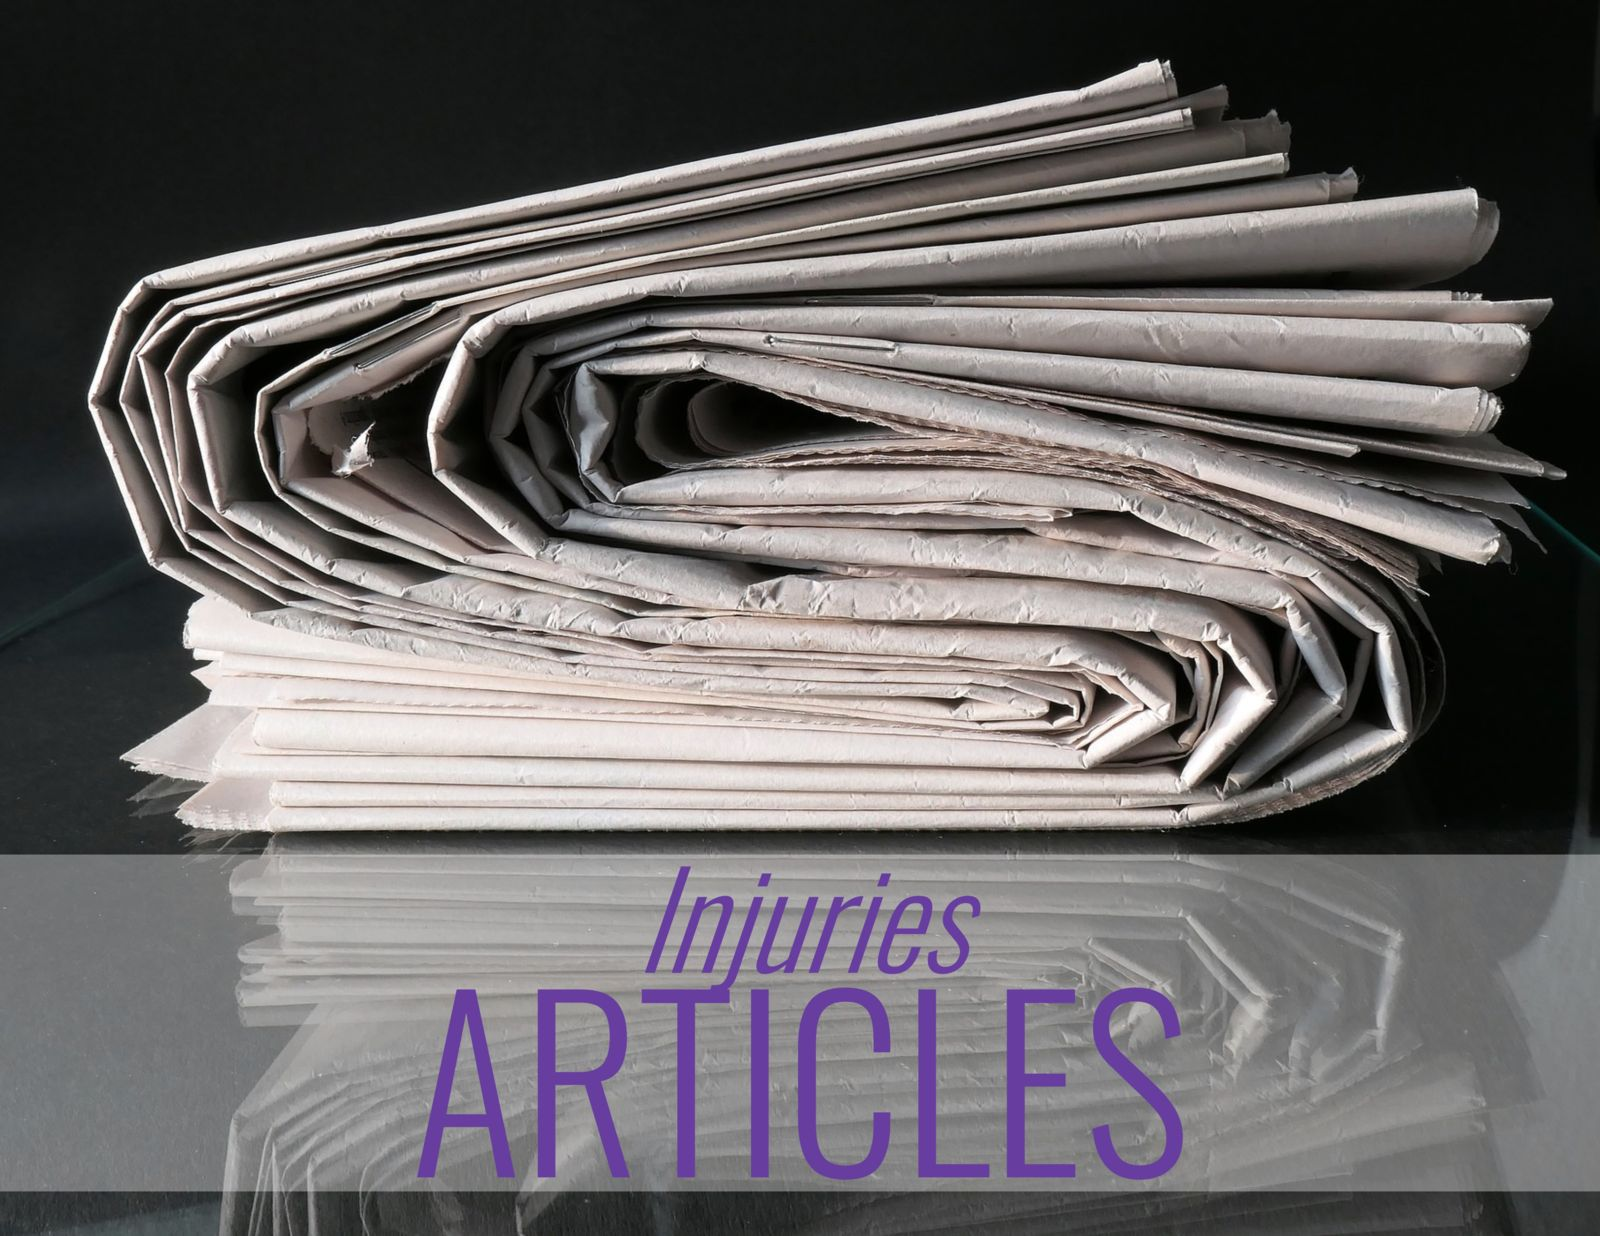 newspapers and the words: Injuries Articles